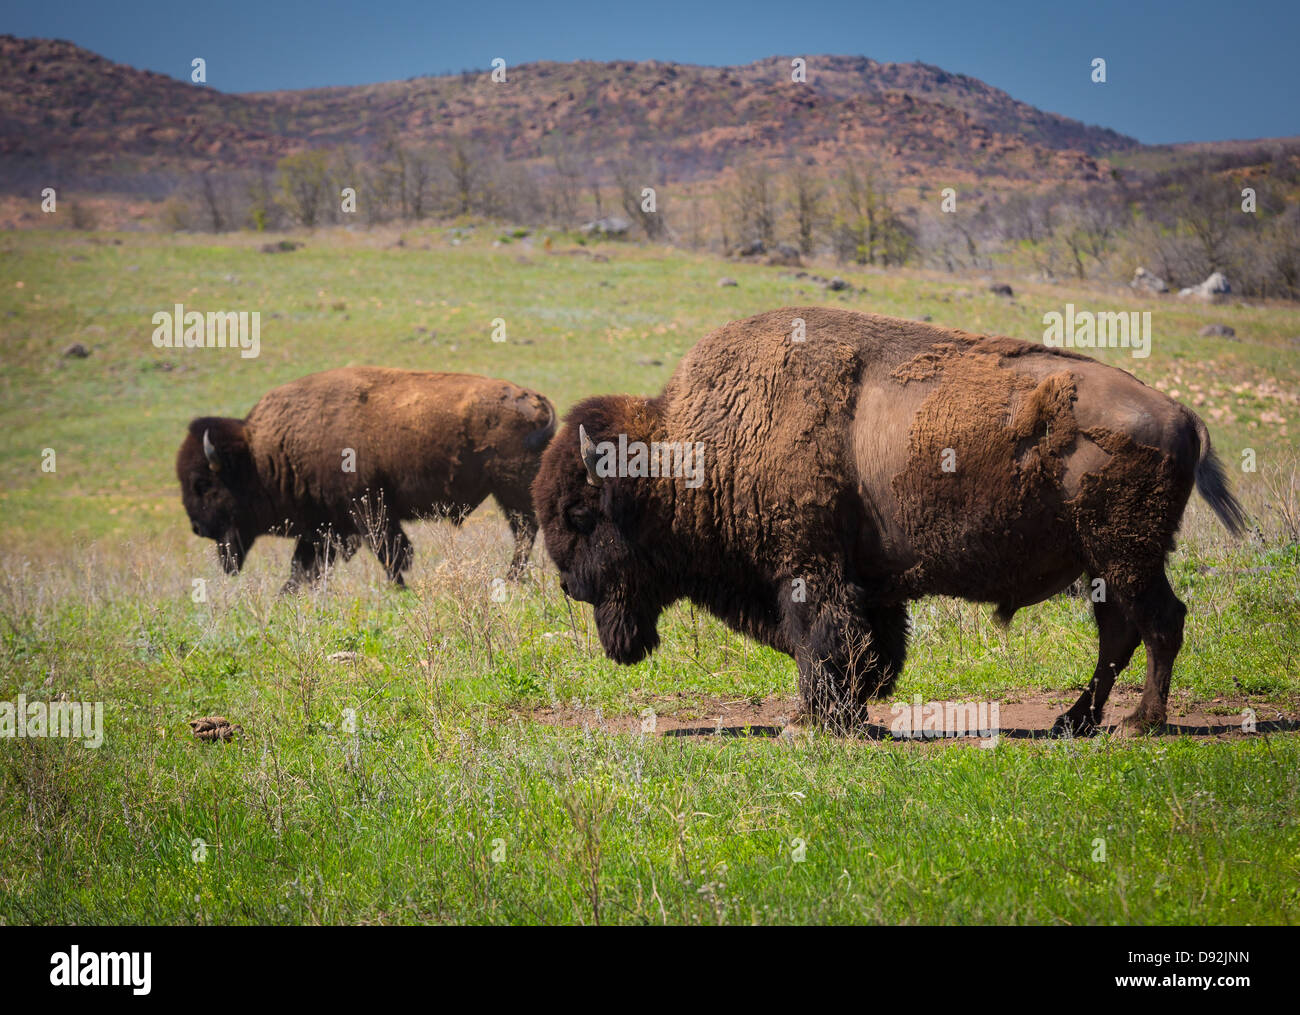 Roaming bison in Wichita Mountains Wildlife Refuge, Oklahoma - Stock Image